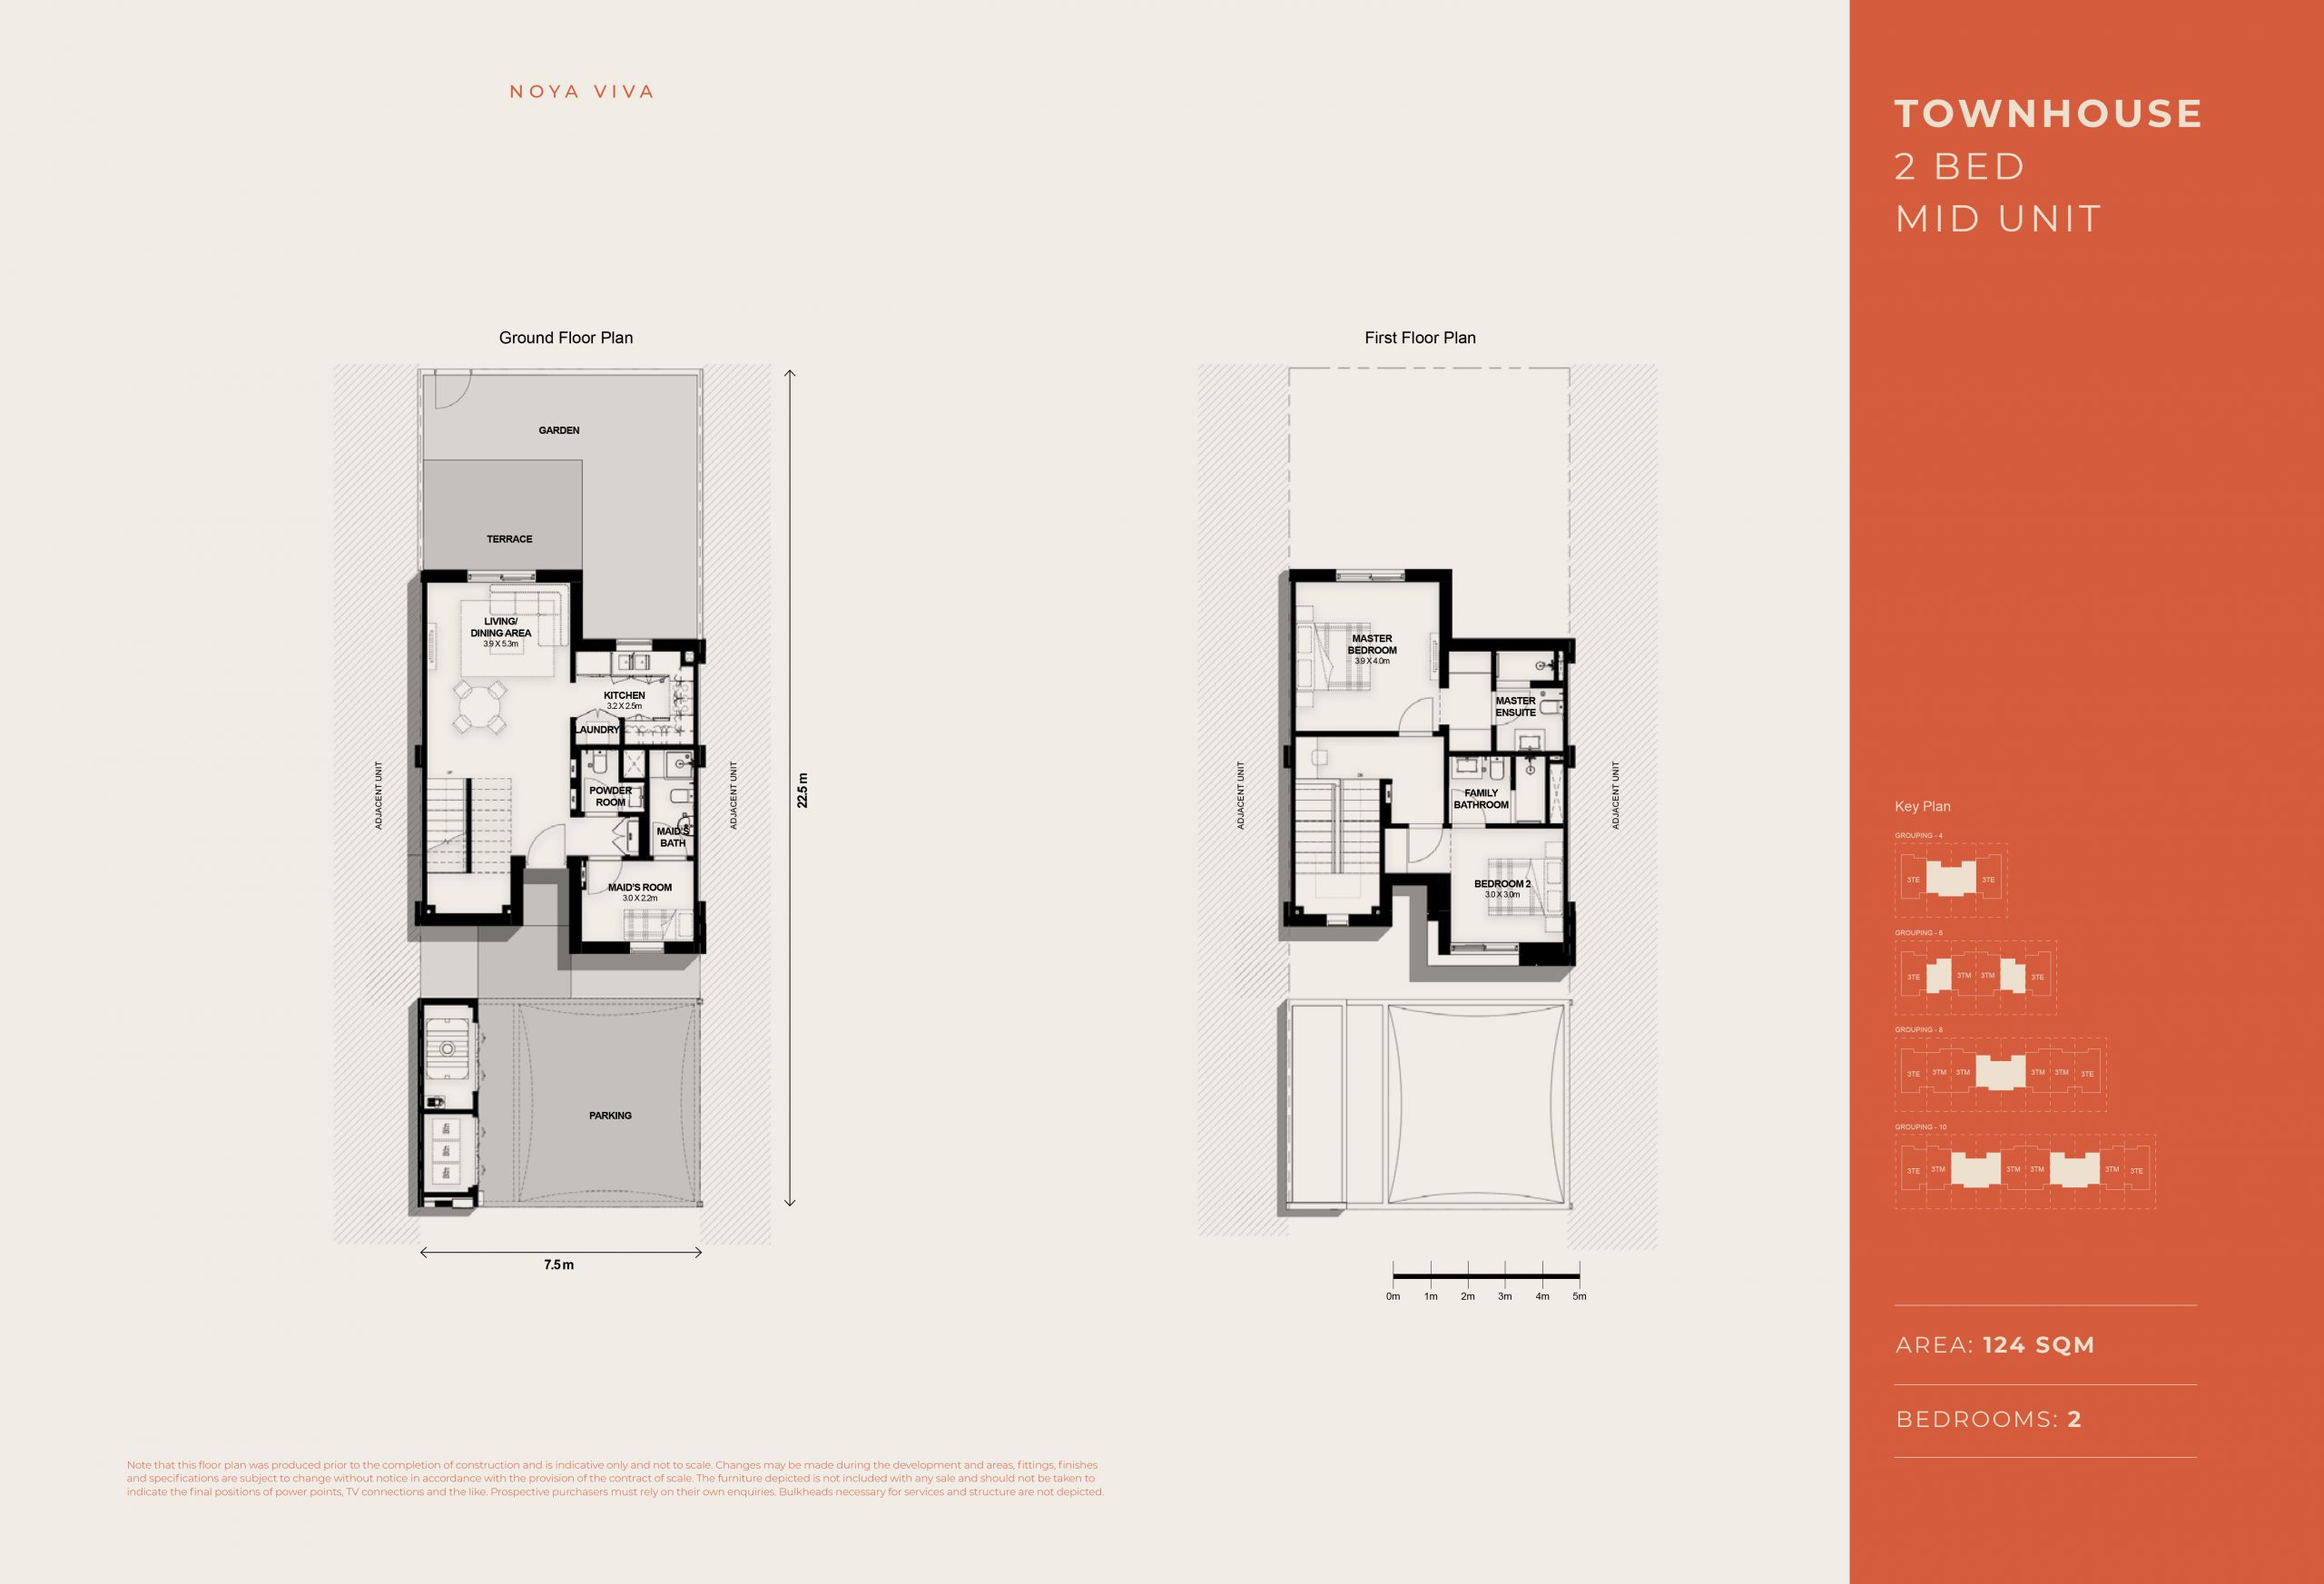 https://drehomes.com/wp-content/uploads/Townhouse-2-bedroom-mid-unit-scaled.jpg